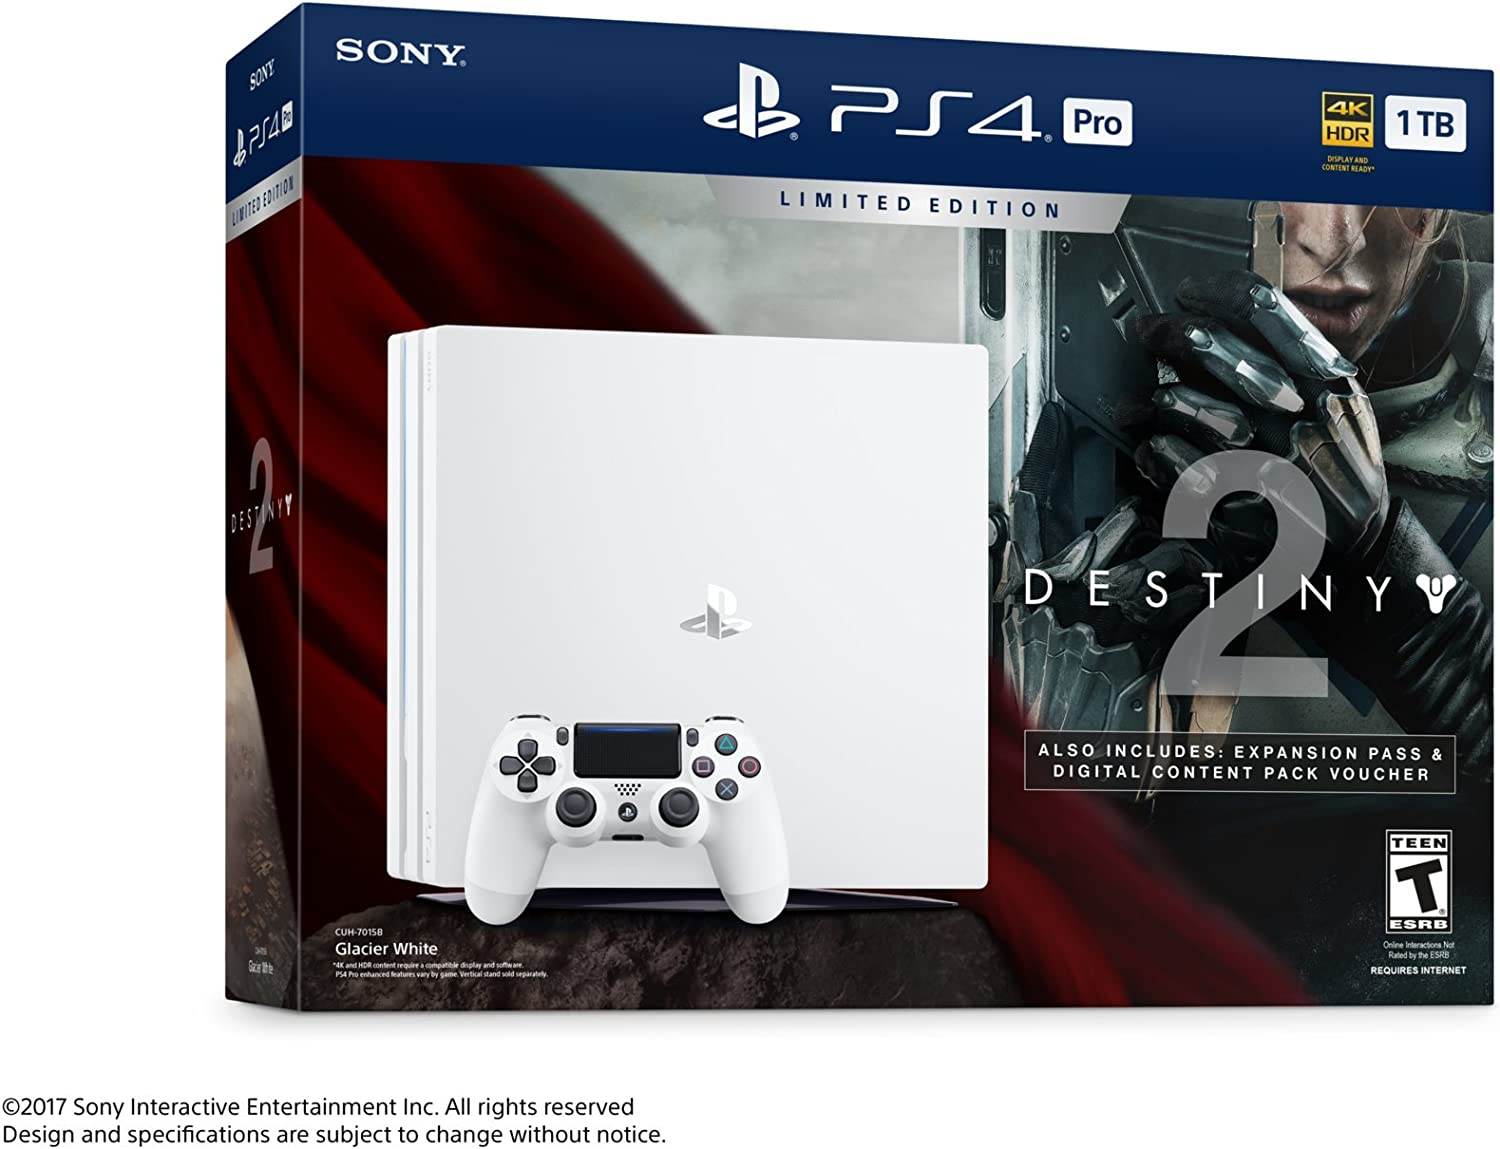 Sony PlayStation 4 Pro 1 TB Limited Consola Edición - Destino 2 Bundle [continuado]: Amazon.es: Videojuegos